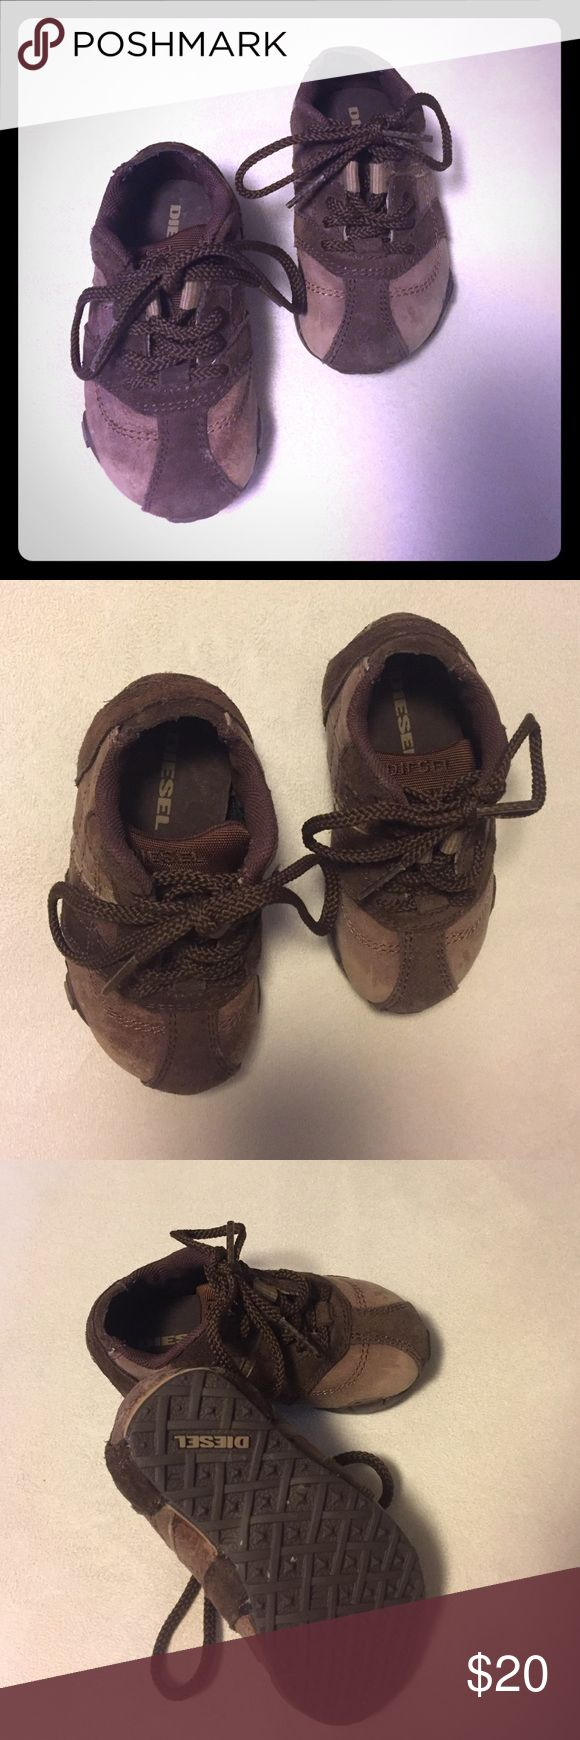 Baby boy Diesel shoes size US 5.5 EUC These super cute & stylish Diesel shoes for a little boy. They are size US 5.5 and in excellent condition. They are made out of brown suede & stressed brown leather! Smoke free & super clean home! Diesel Shoes Baby & Walker